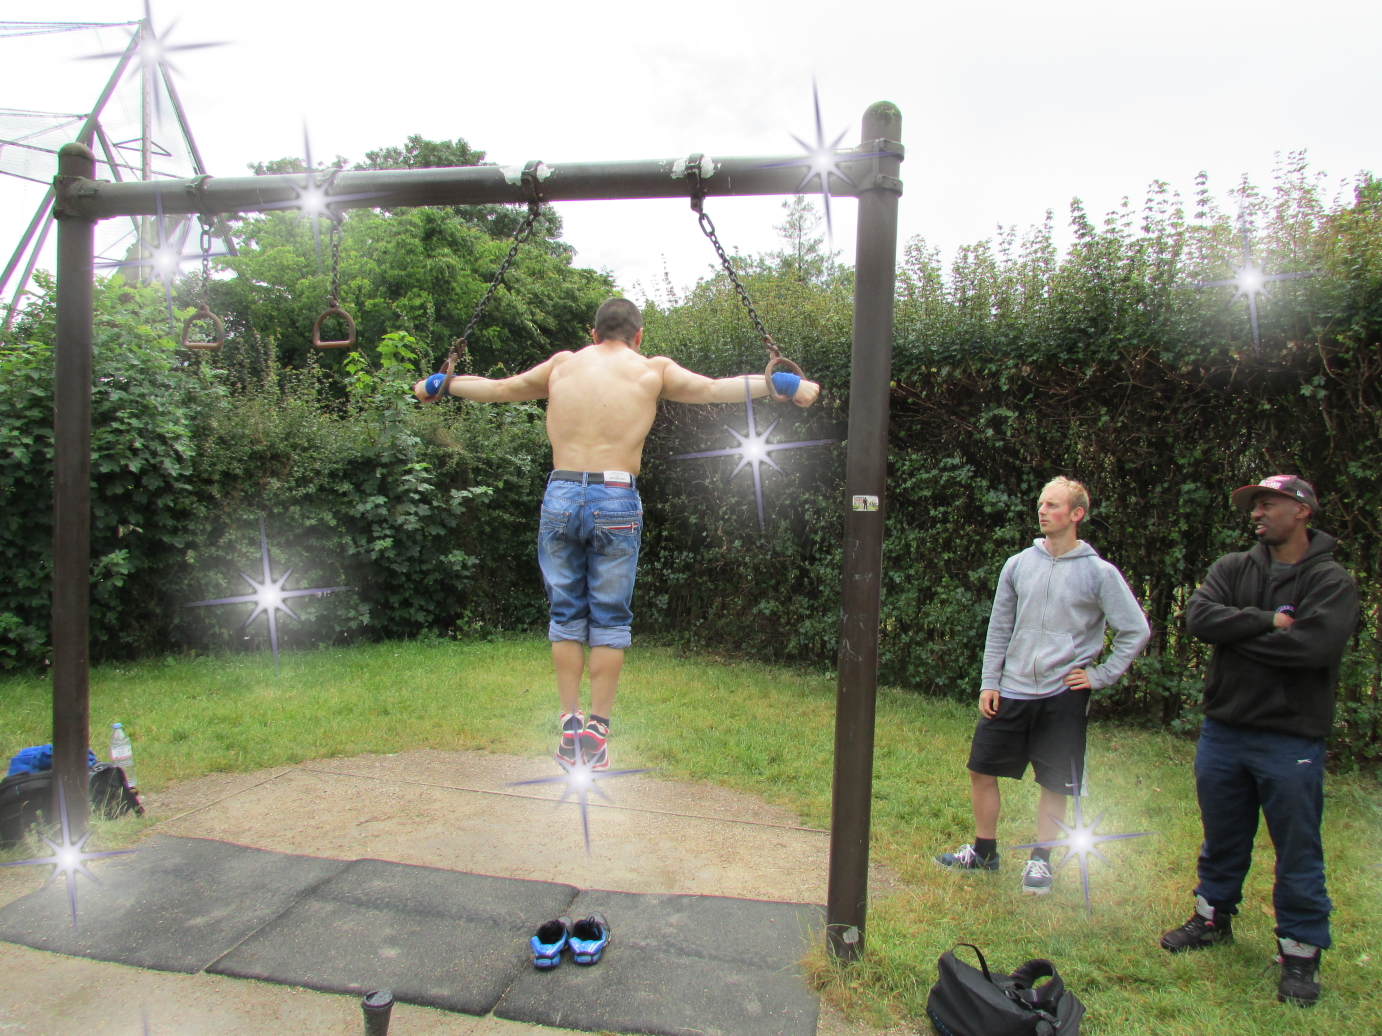 First Cross at the Street Workout London